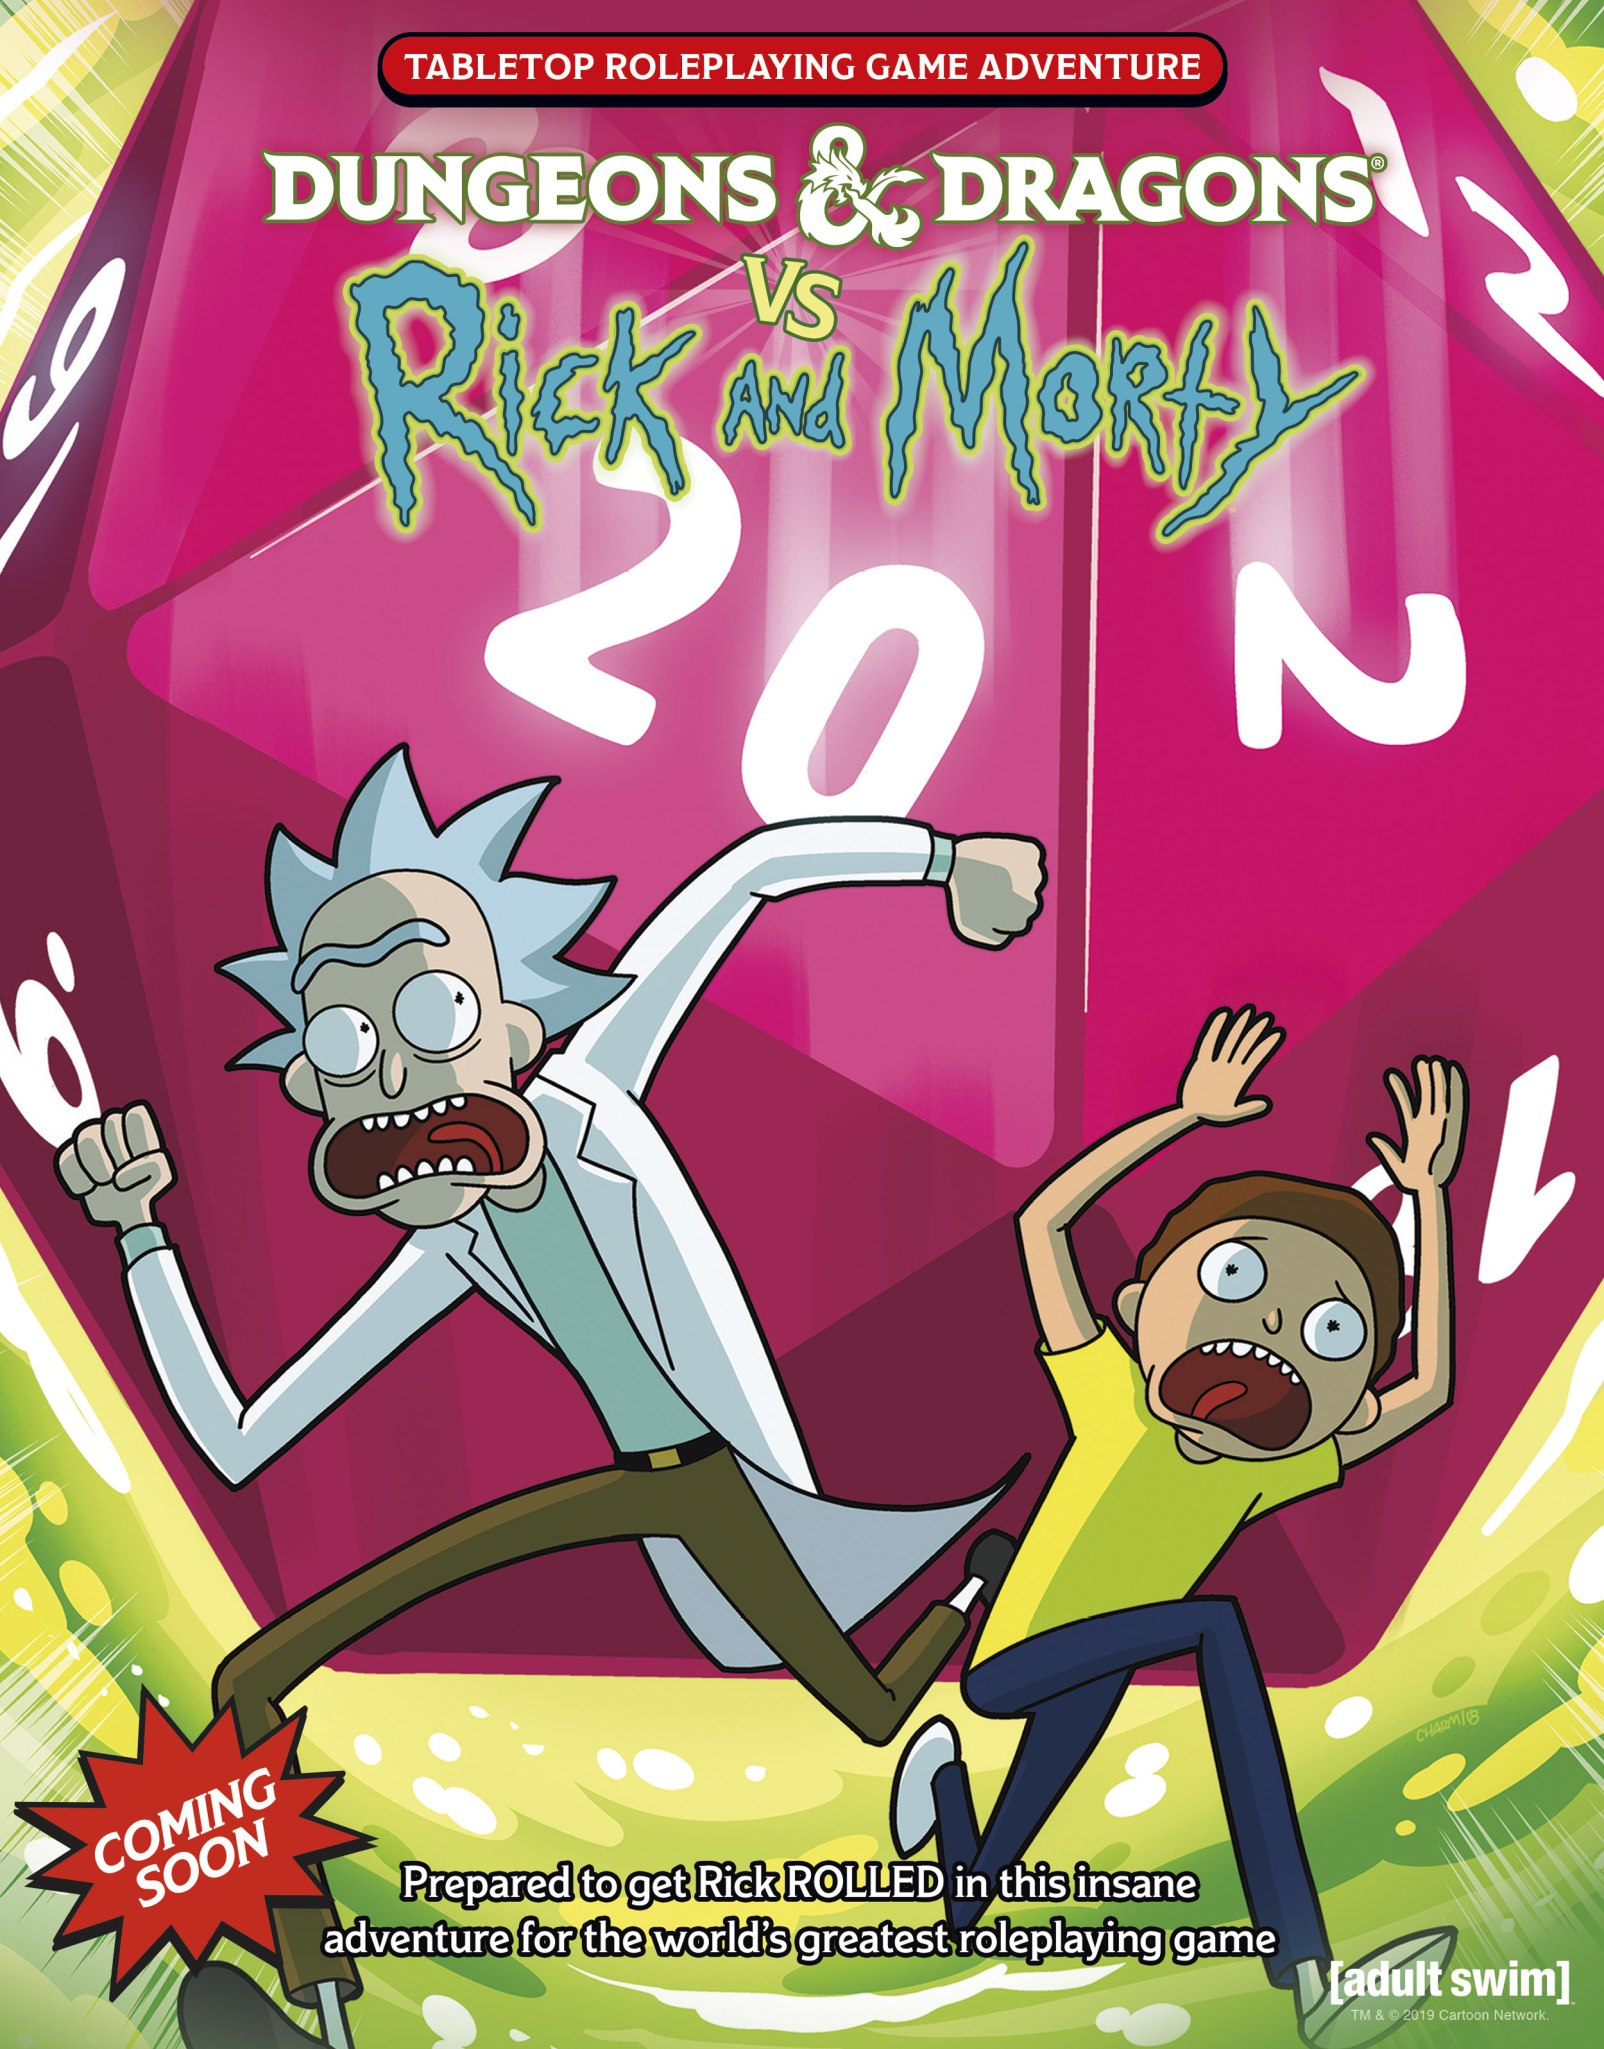 mocked-up-cover-e28093-dd-vs-rick-and-morty-tabletop-roleplaying-game-adventure-1.jpg